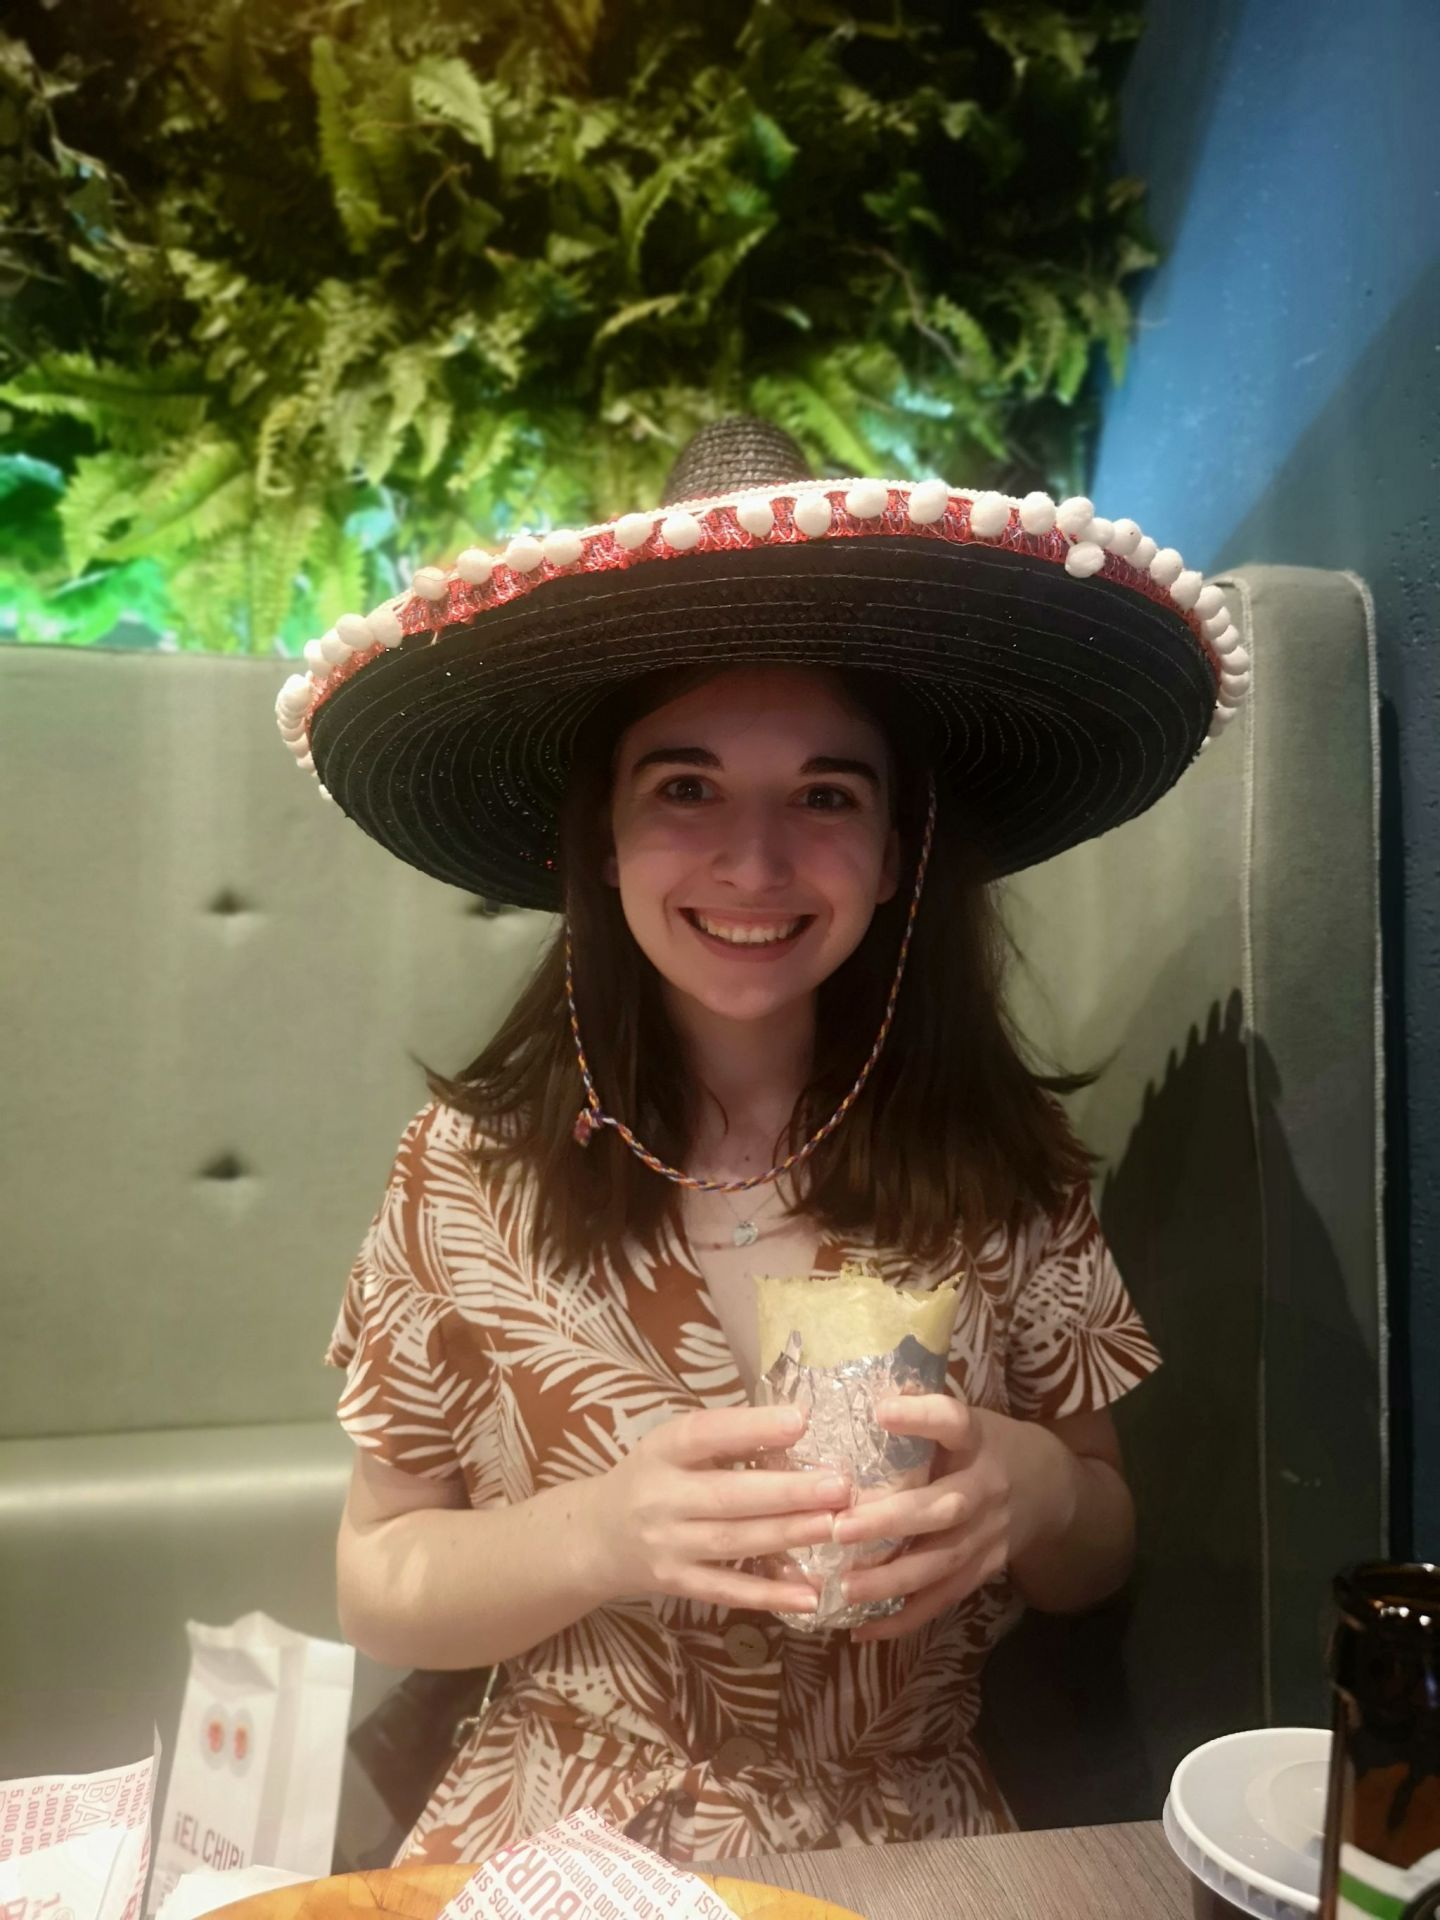 Hollie in Wanderlust | Food Blogger | Review of Barburrito Liverpool